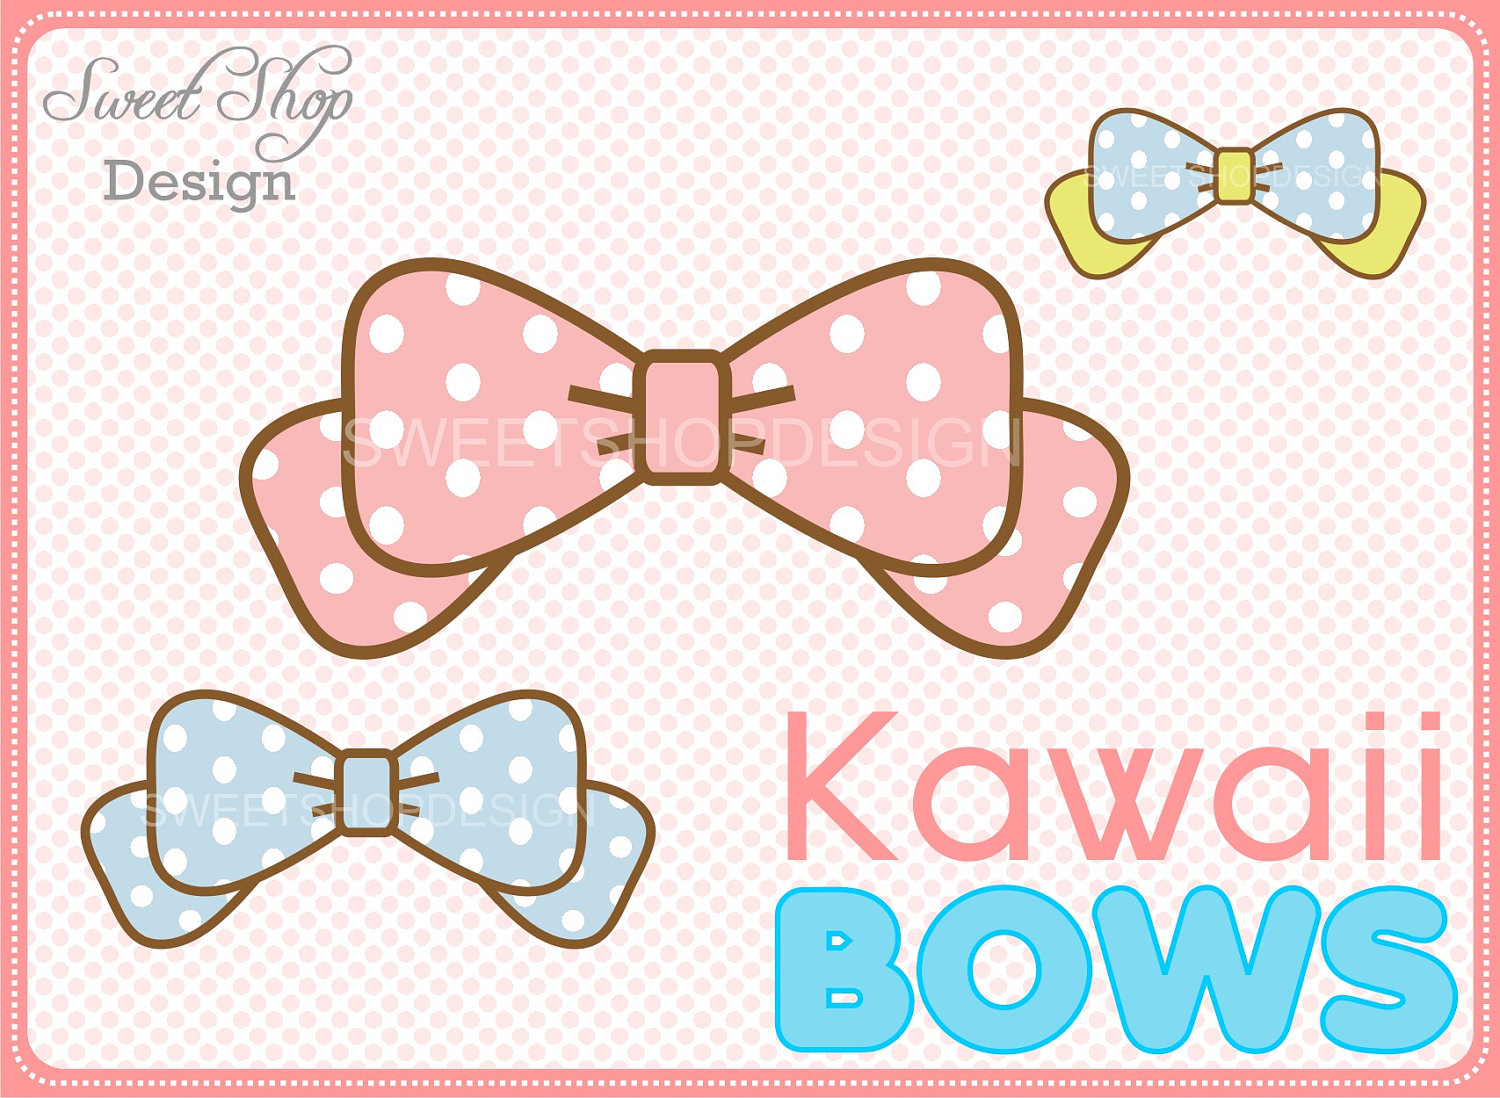 Bows clipart kawaii. Index of cdn babyshowerbowclipartjpg